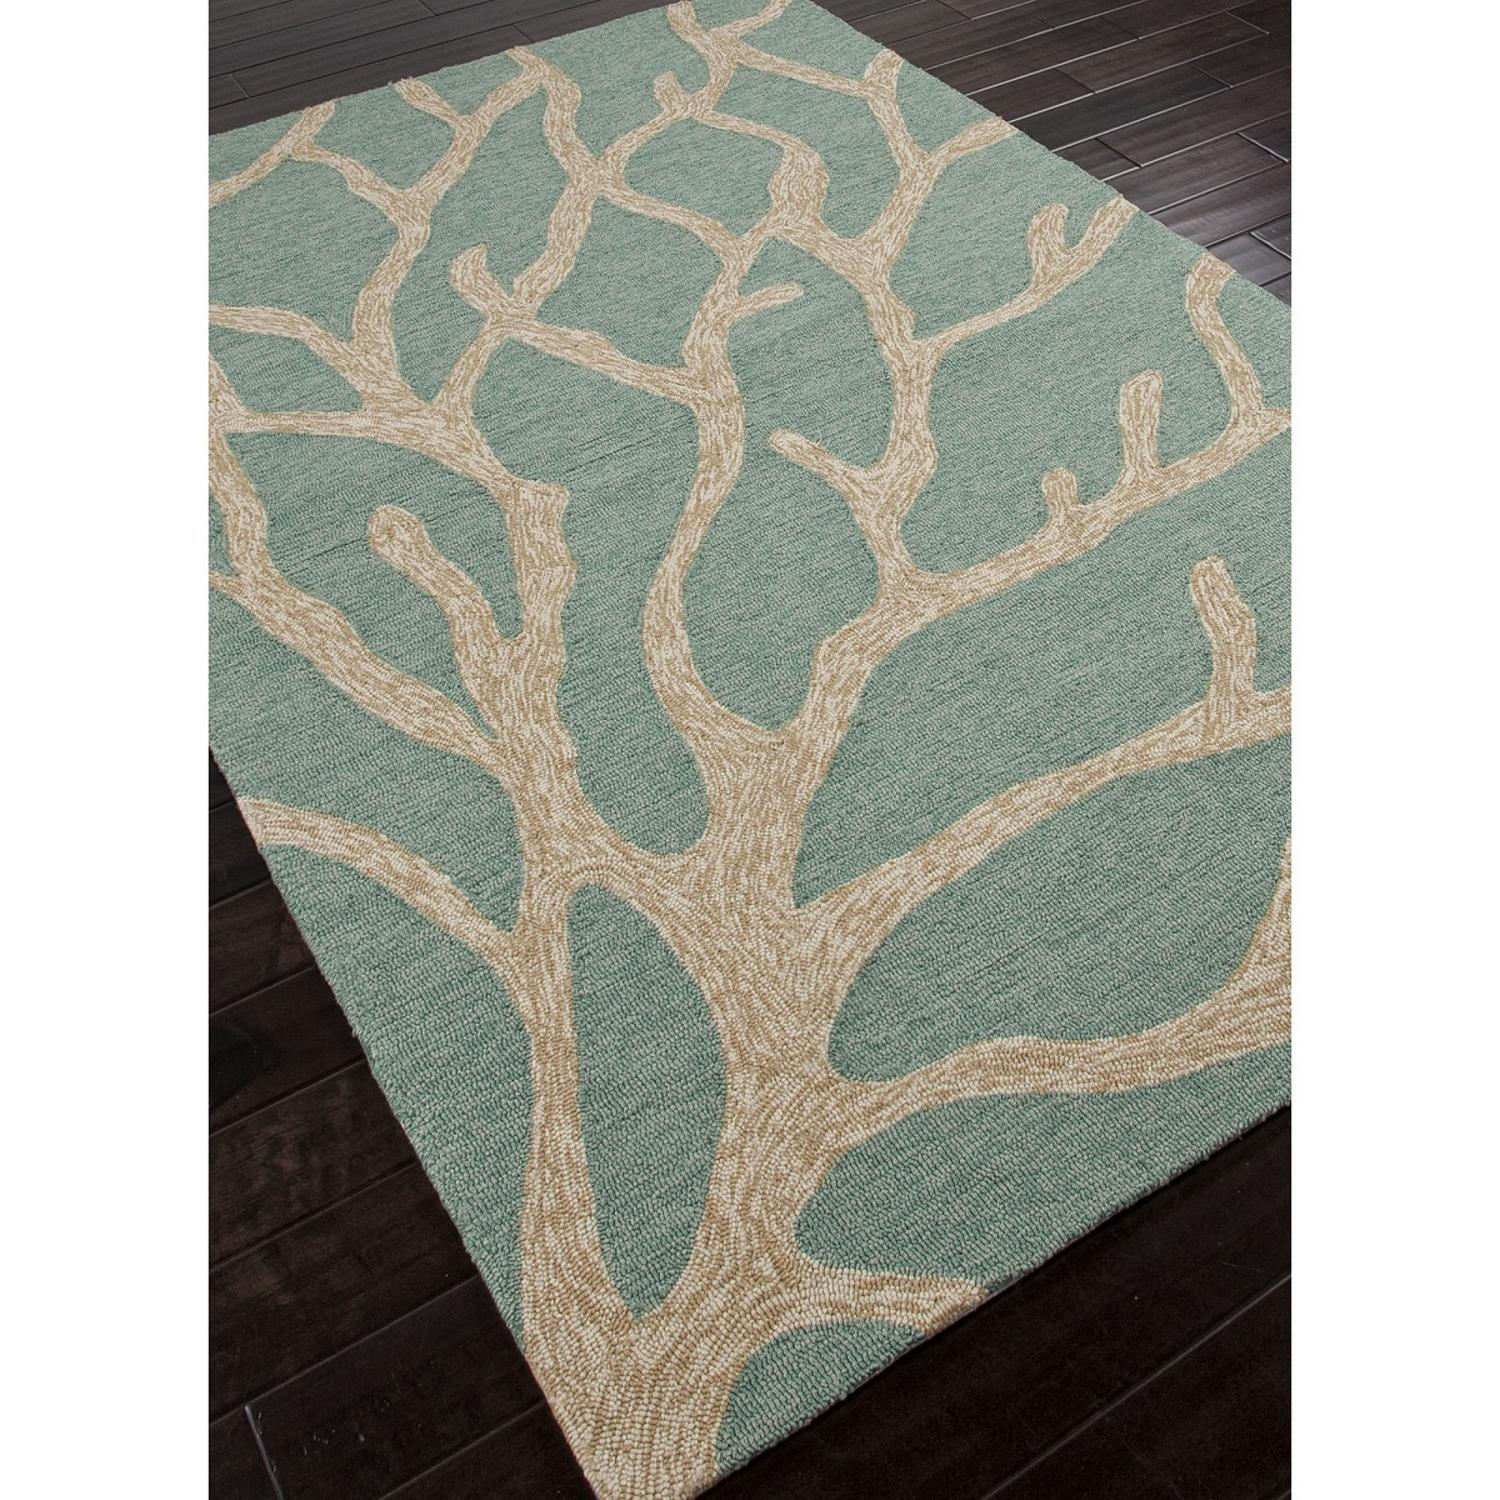 3.5' X 5.5' Aqua Blue And Taupe Outdoor Coral Area Throw